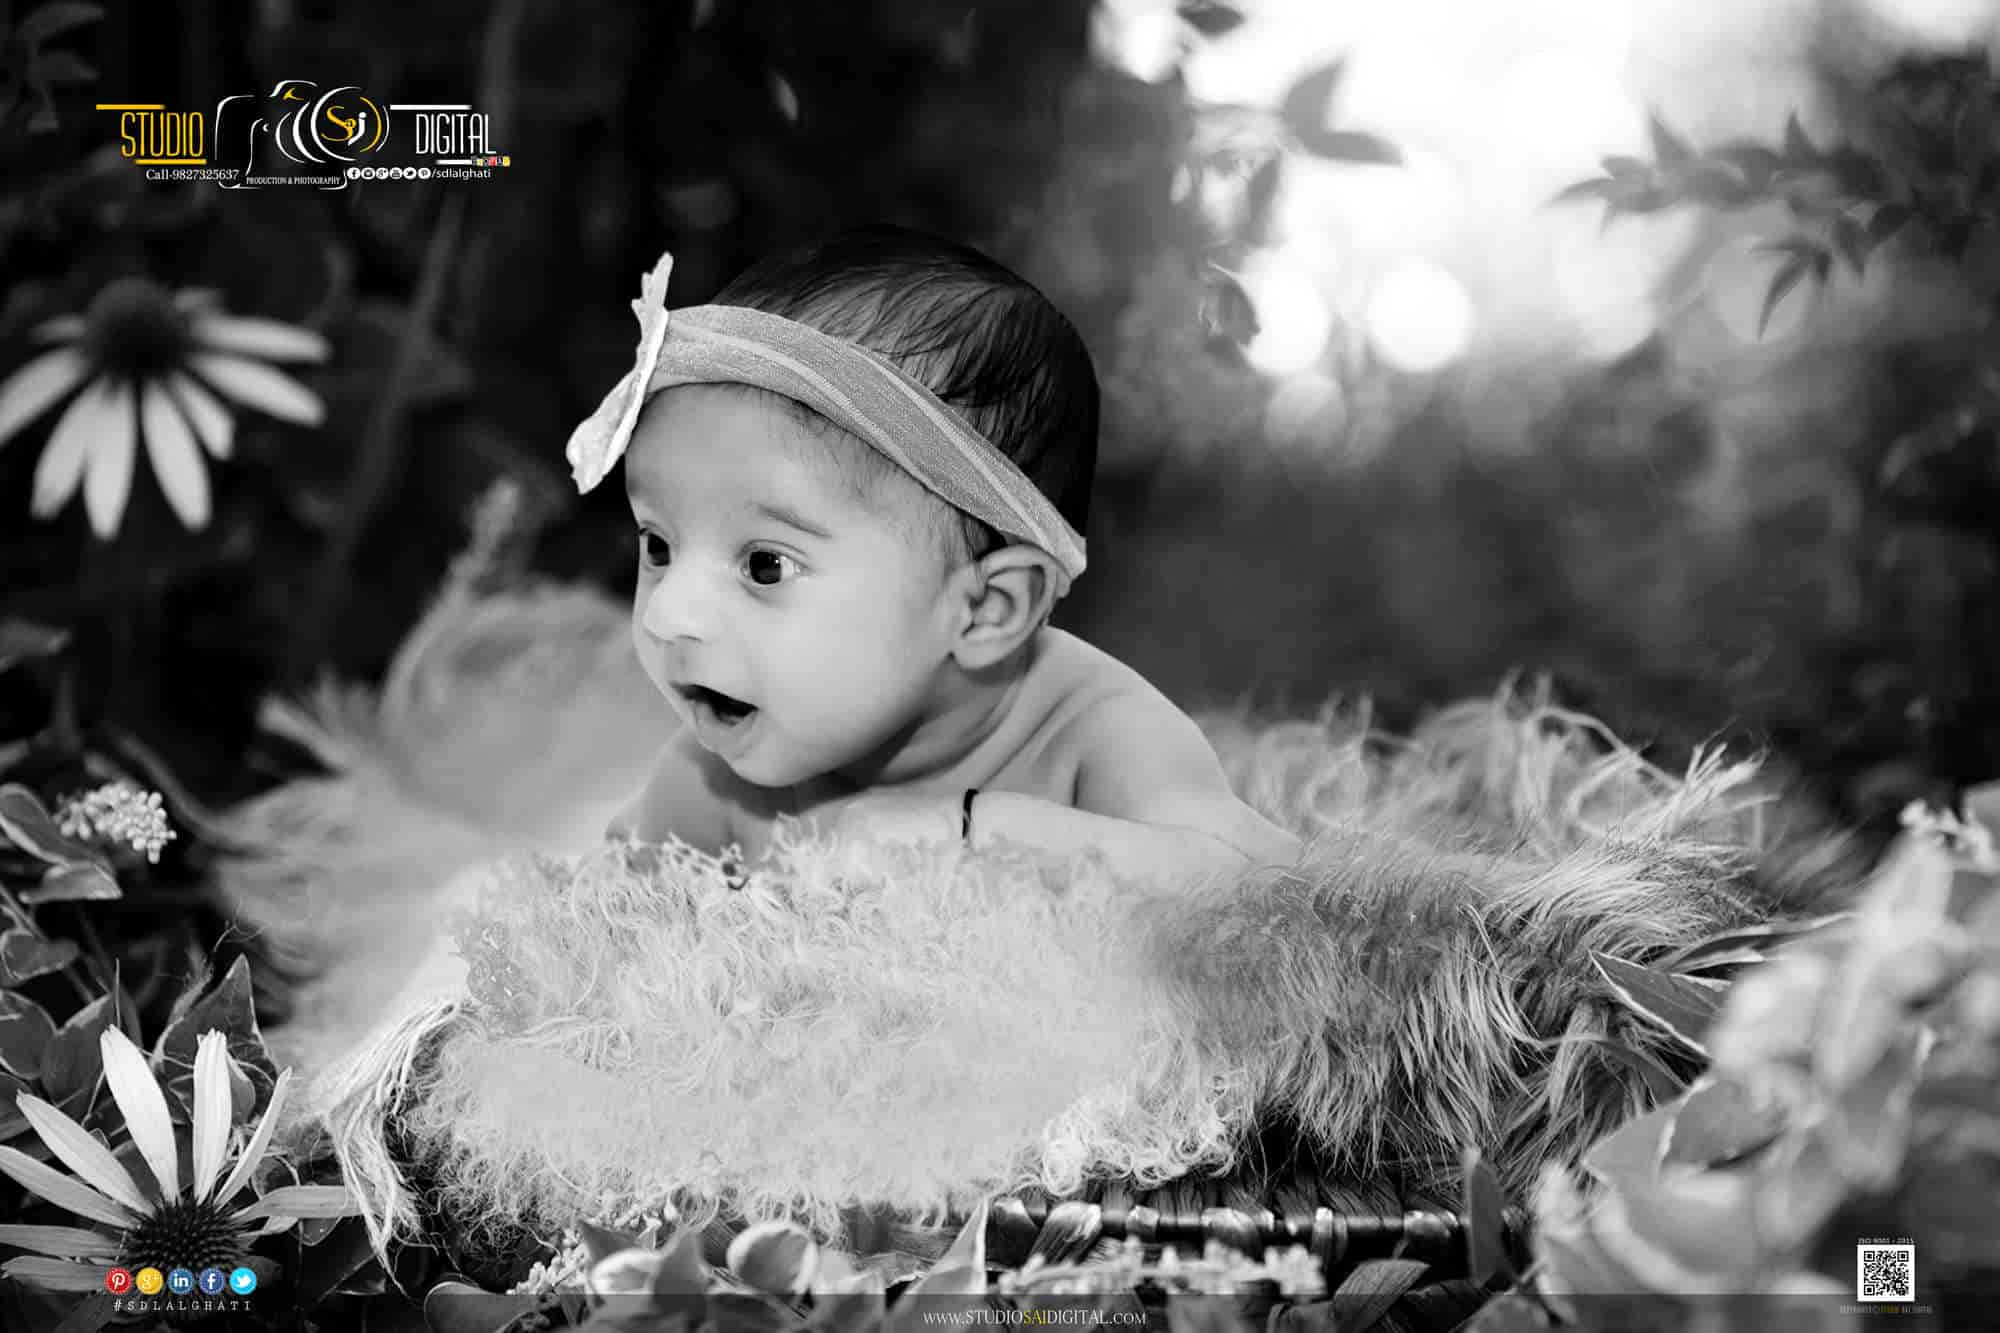 Shooting Digital Photographs Through >> Studio Sai Digital Photos Lalghati Bhopal Pictures Images